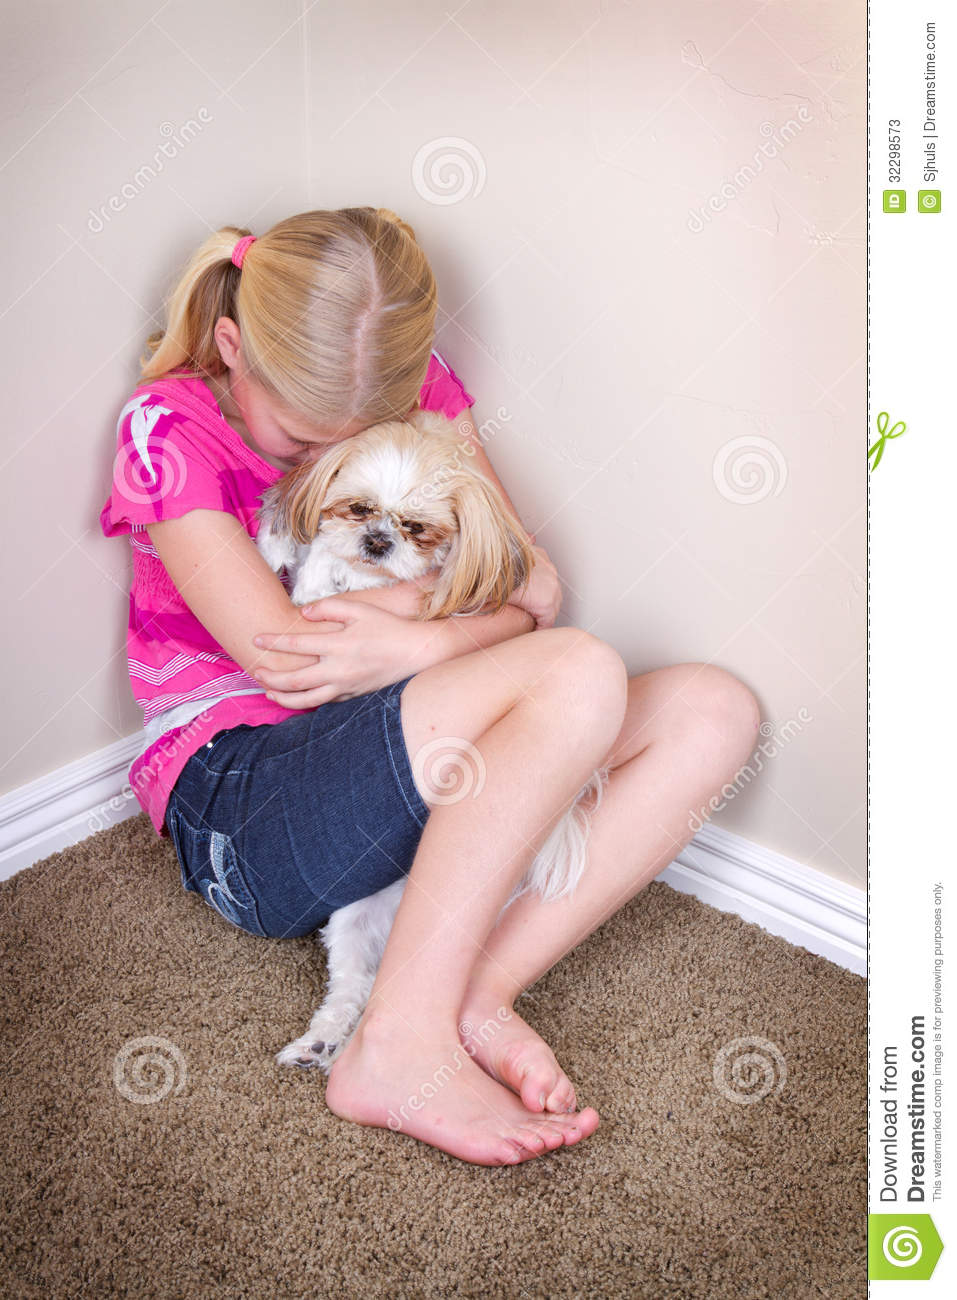 how to stop dog crying when alone